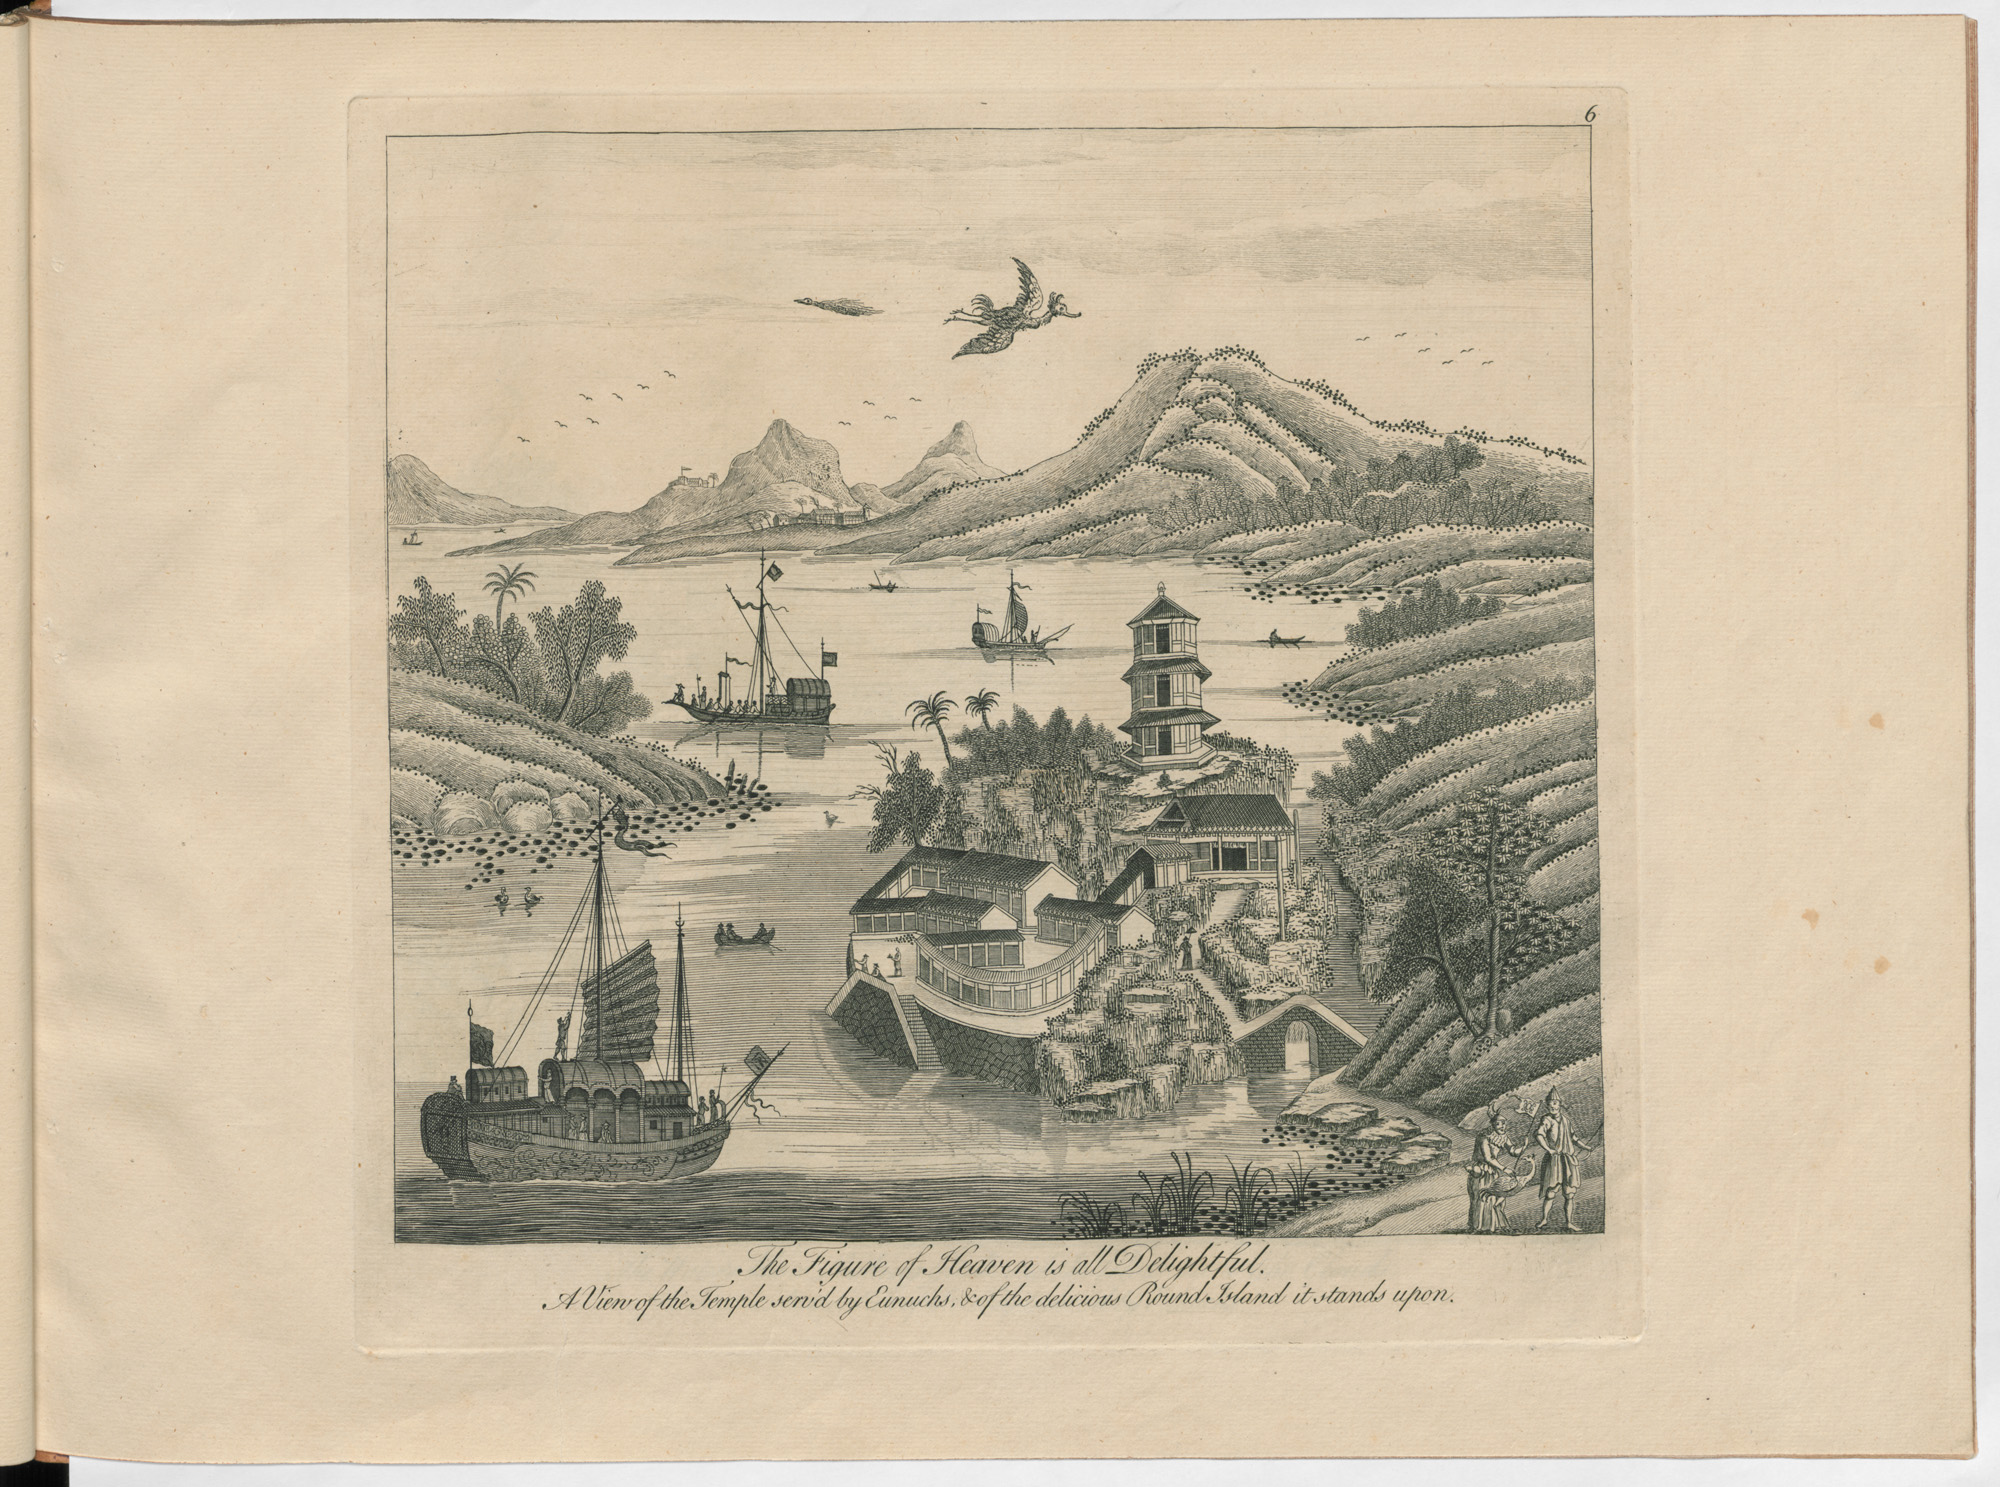 An 18th century engraving of Imperial China, 'the Figure of heaven is all delightful'